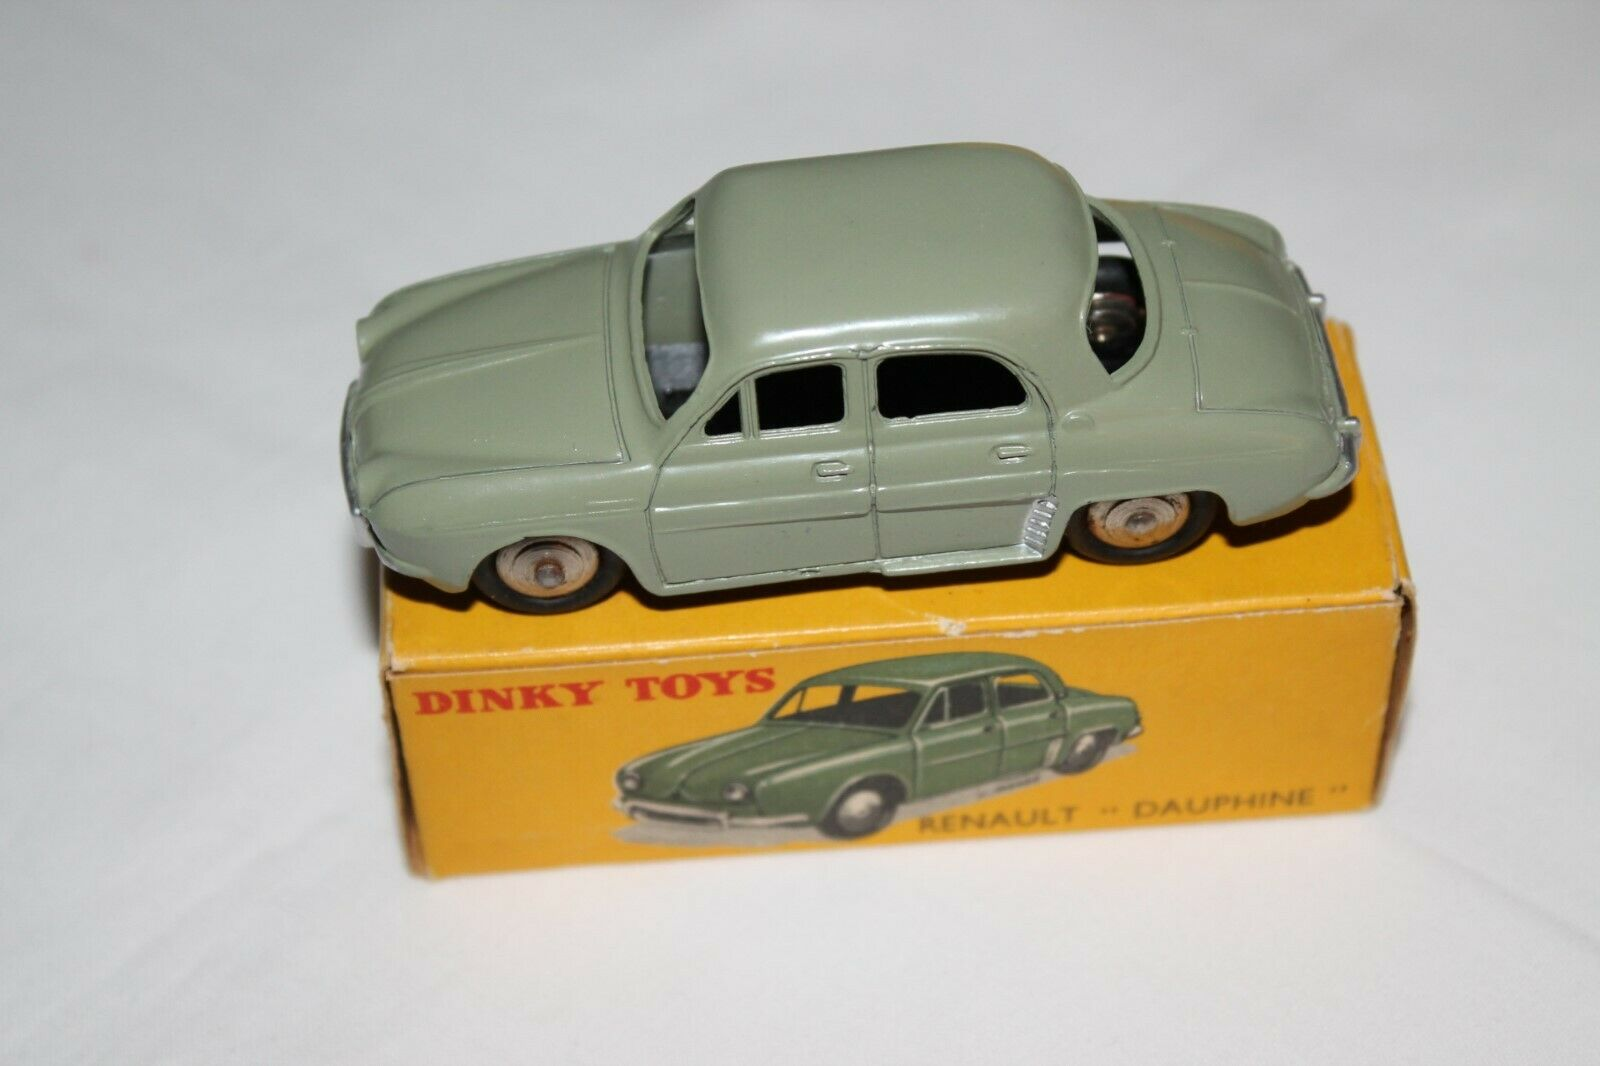 FRENCH DINKY TOYS 24E Dauphine Renault